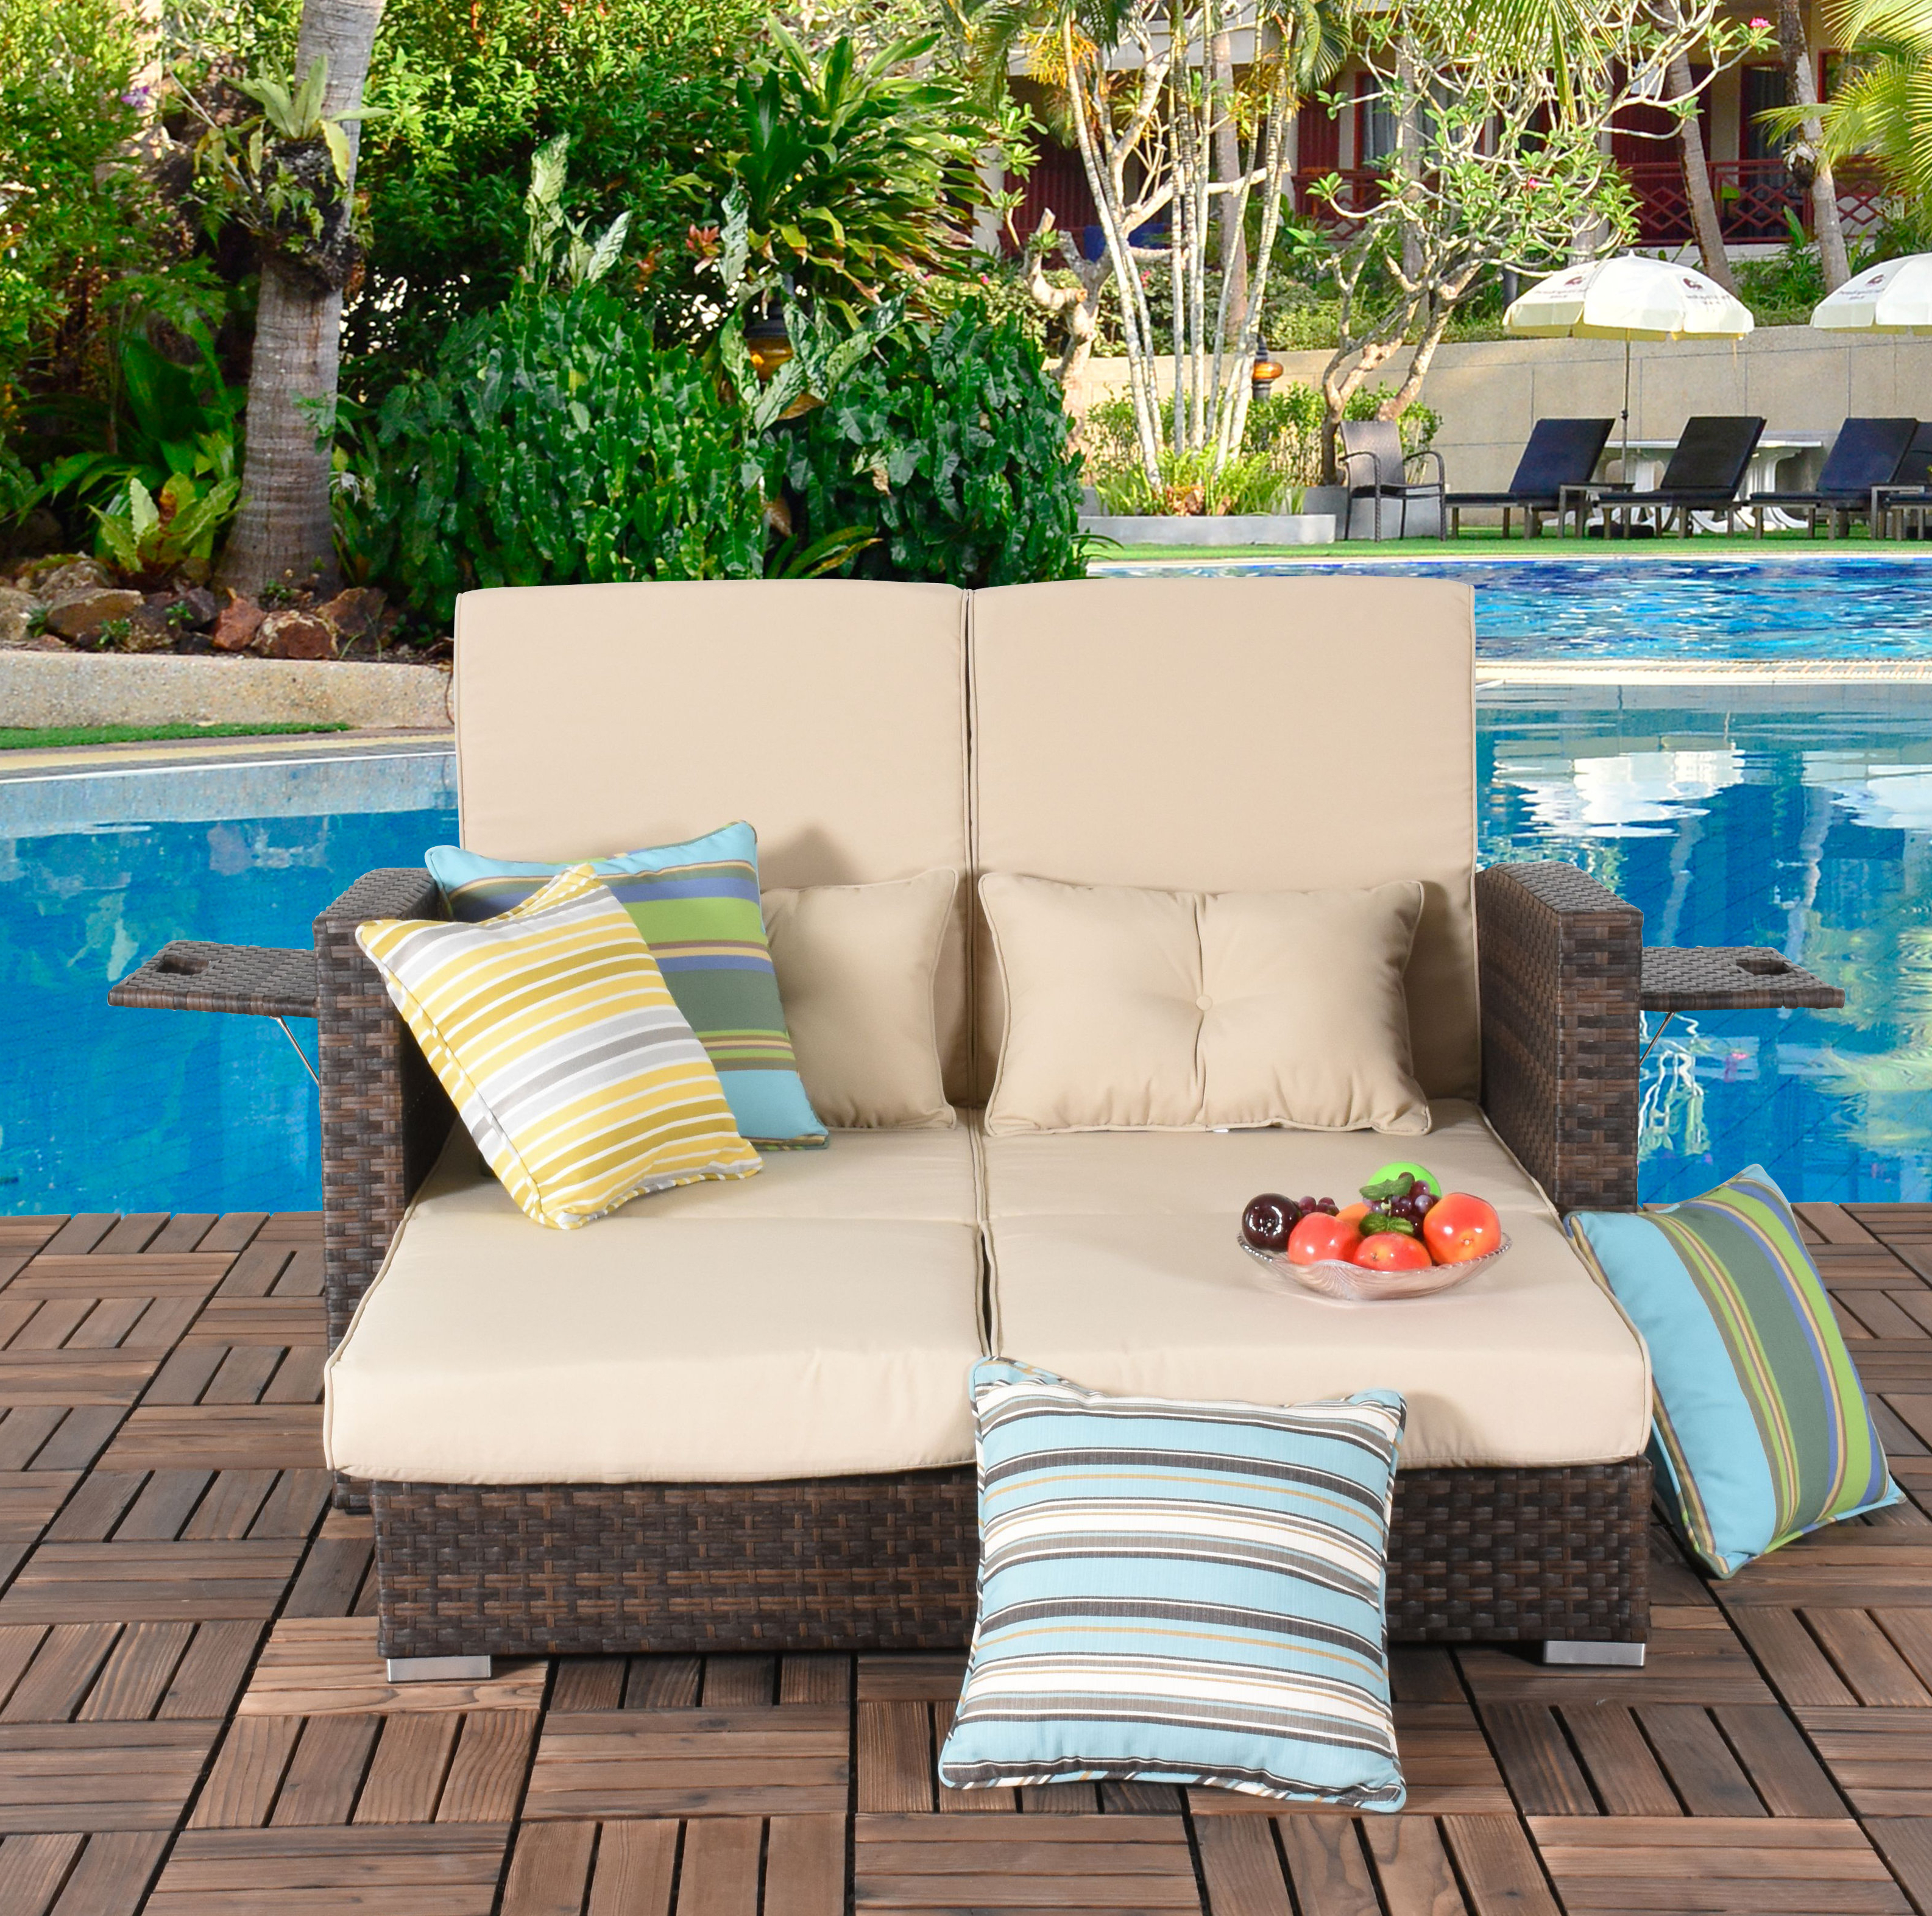 Widely Used Falmouth Patio Daybeds With Cushions With Regard To Cabrillo Patio Daybed With Cushions (View 20 of 20)